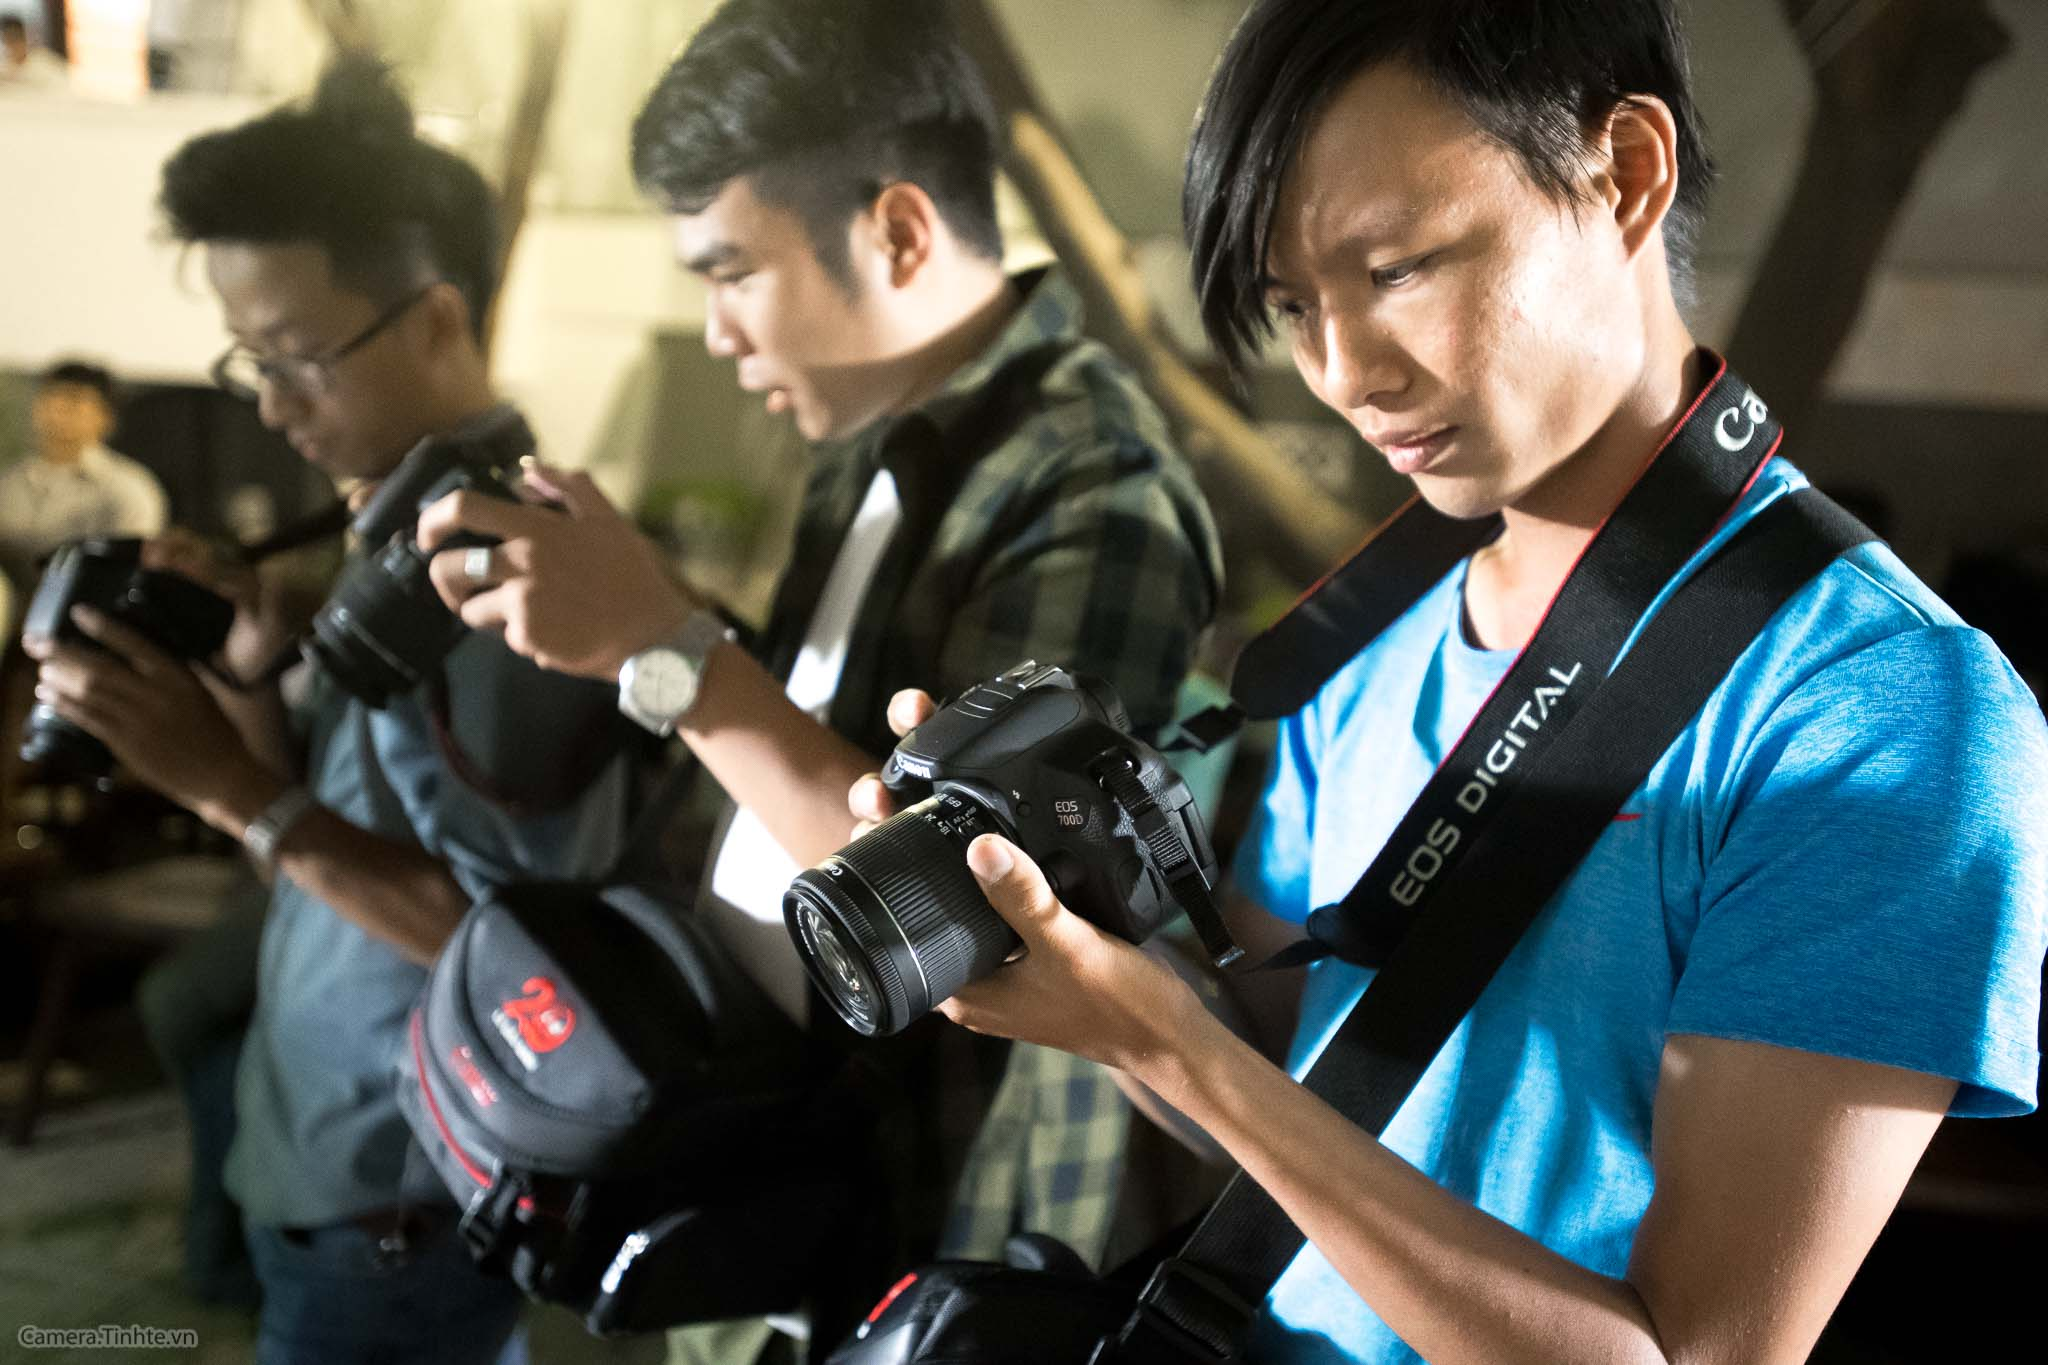 Workshop chup anh the thao - Camera.tinhte.vn-13.jpg